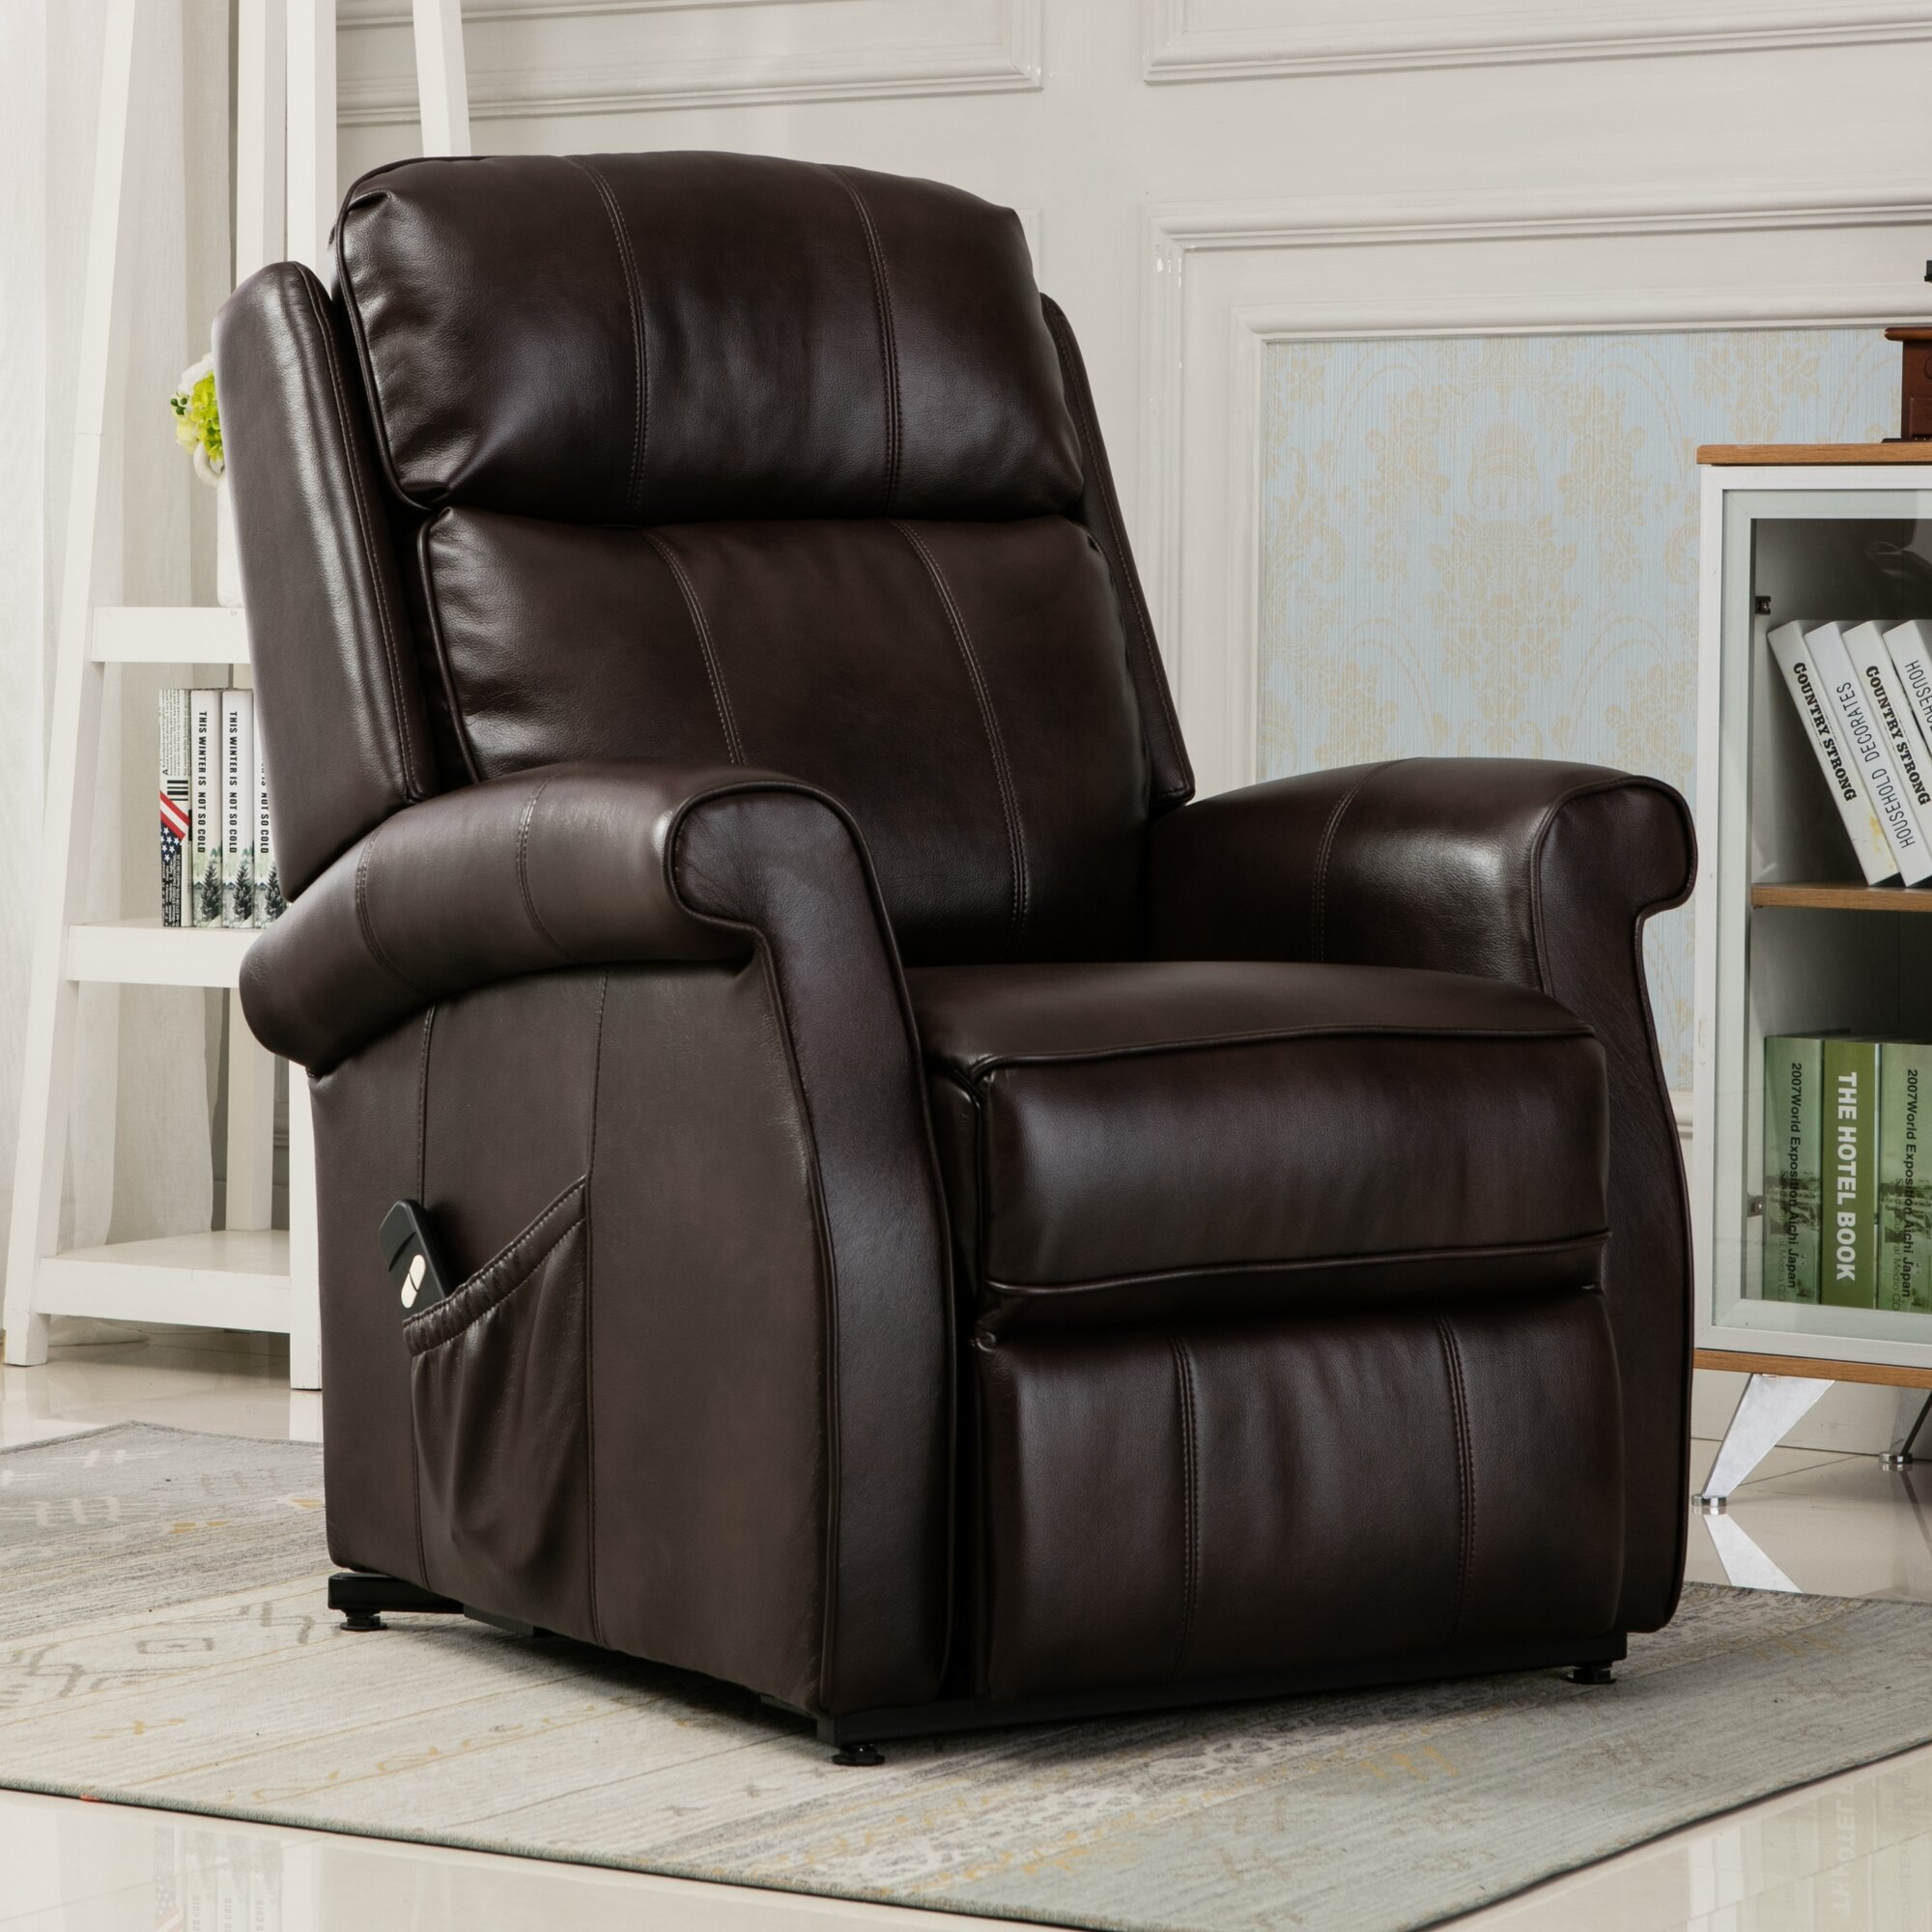 Unique Ultra fort Lift Chair